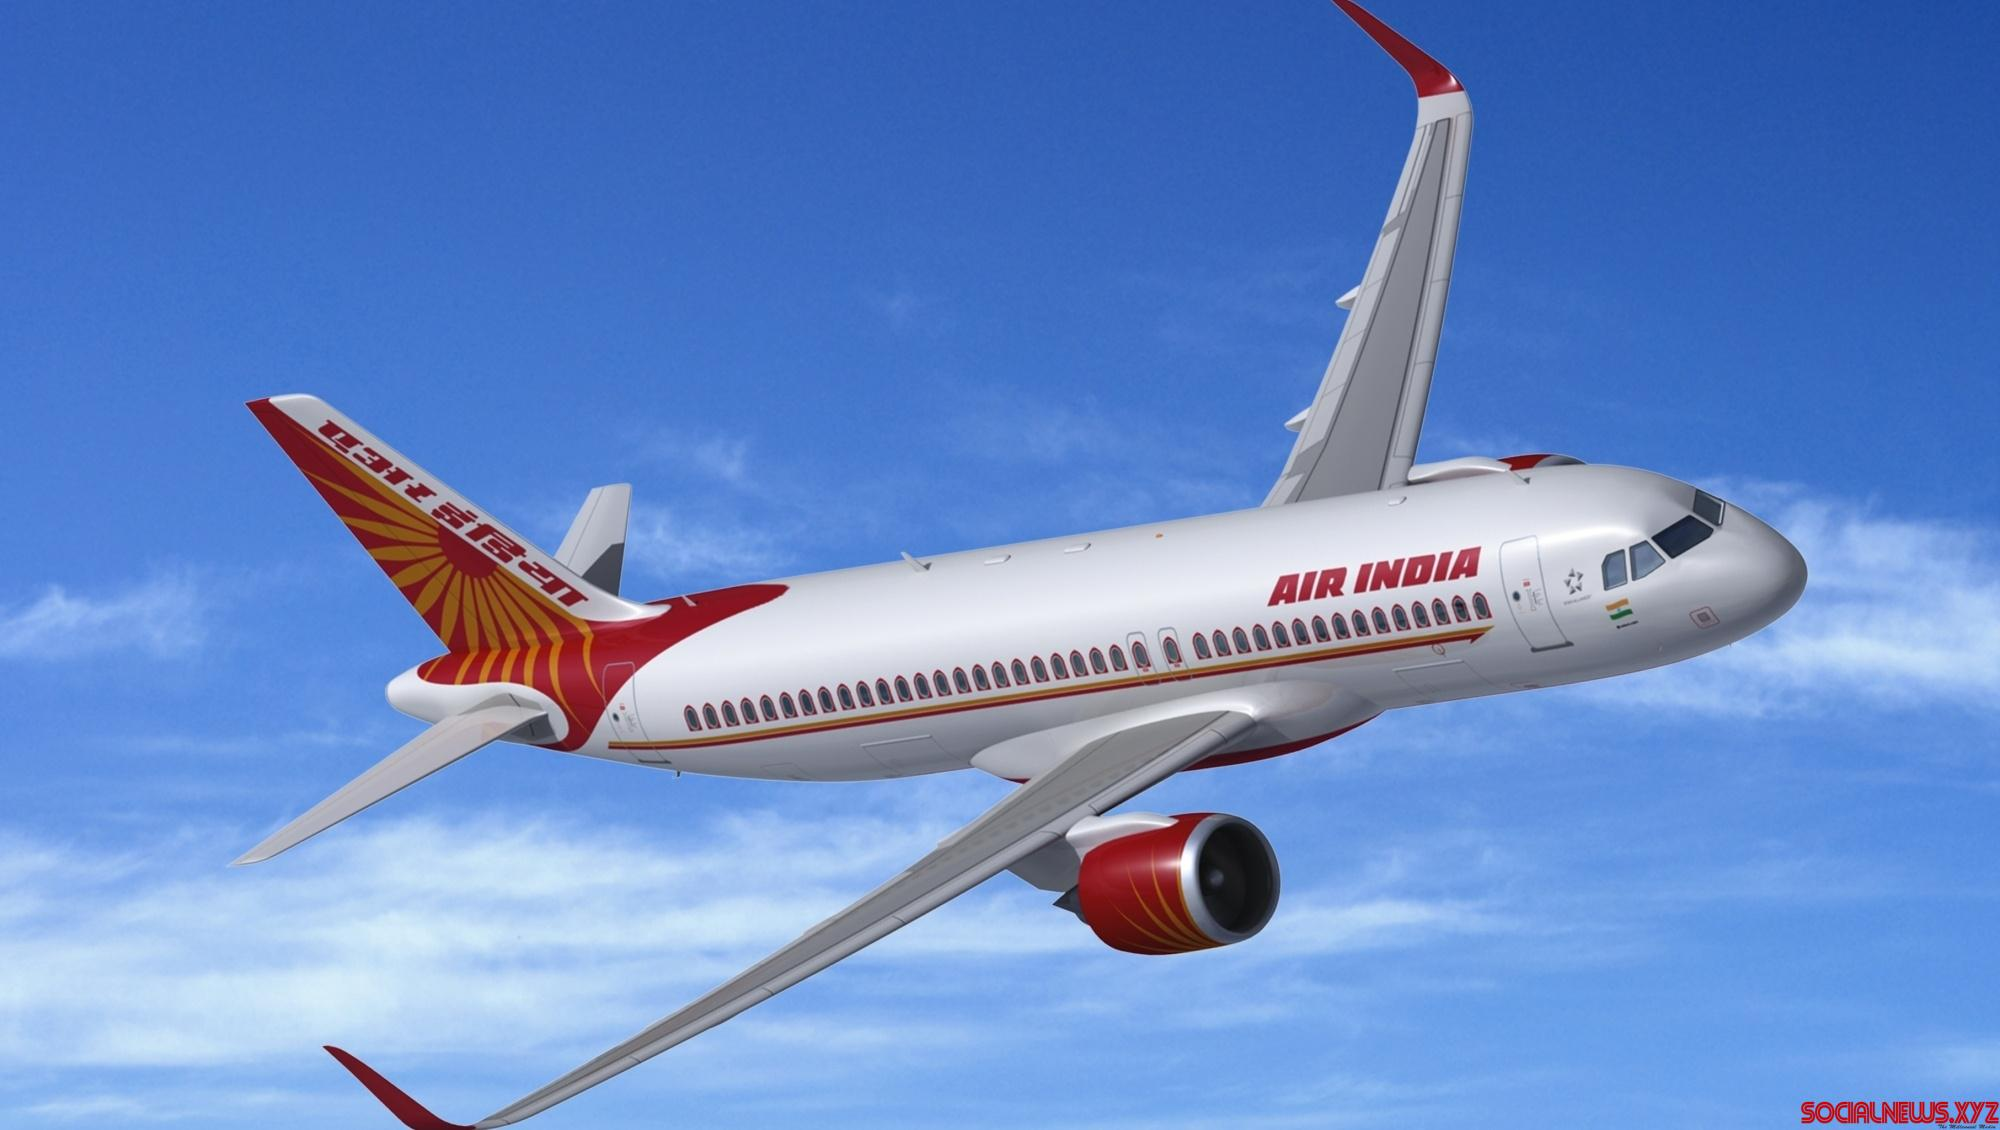 Direct Aviation Ministry to revisit pay cut: AI engineers to PM